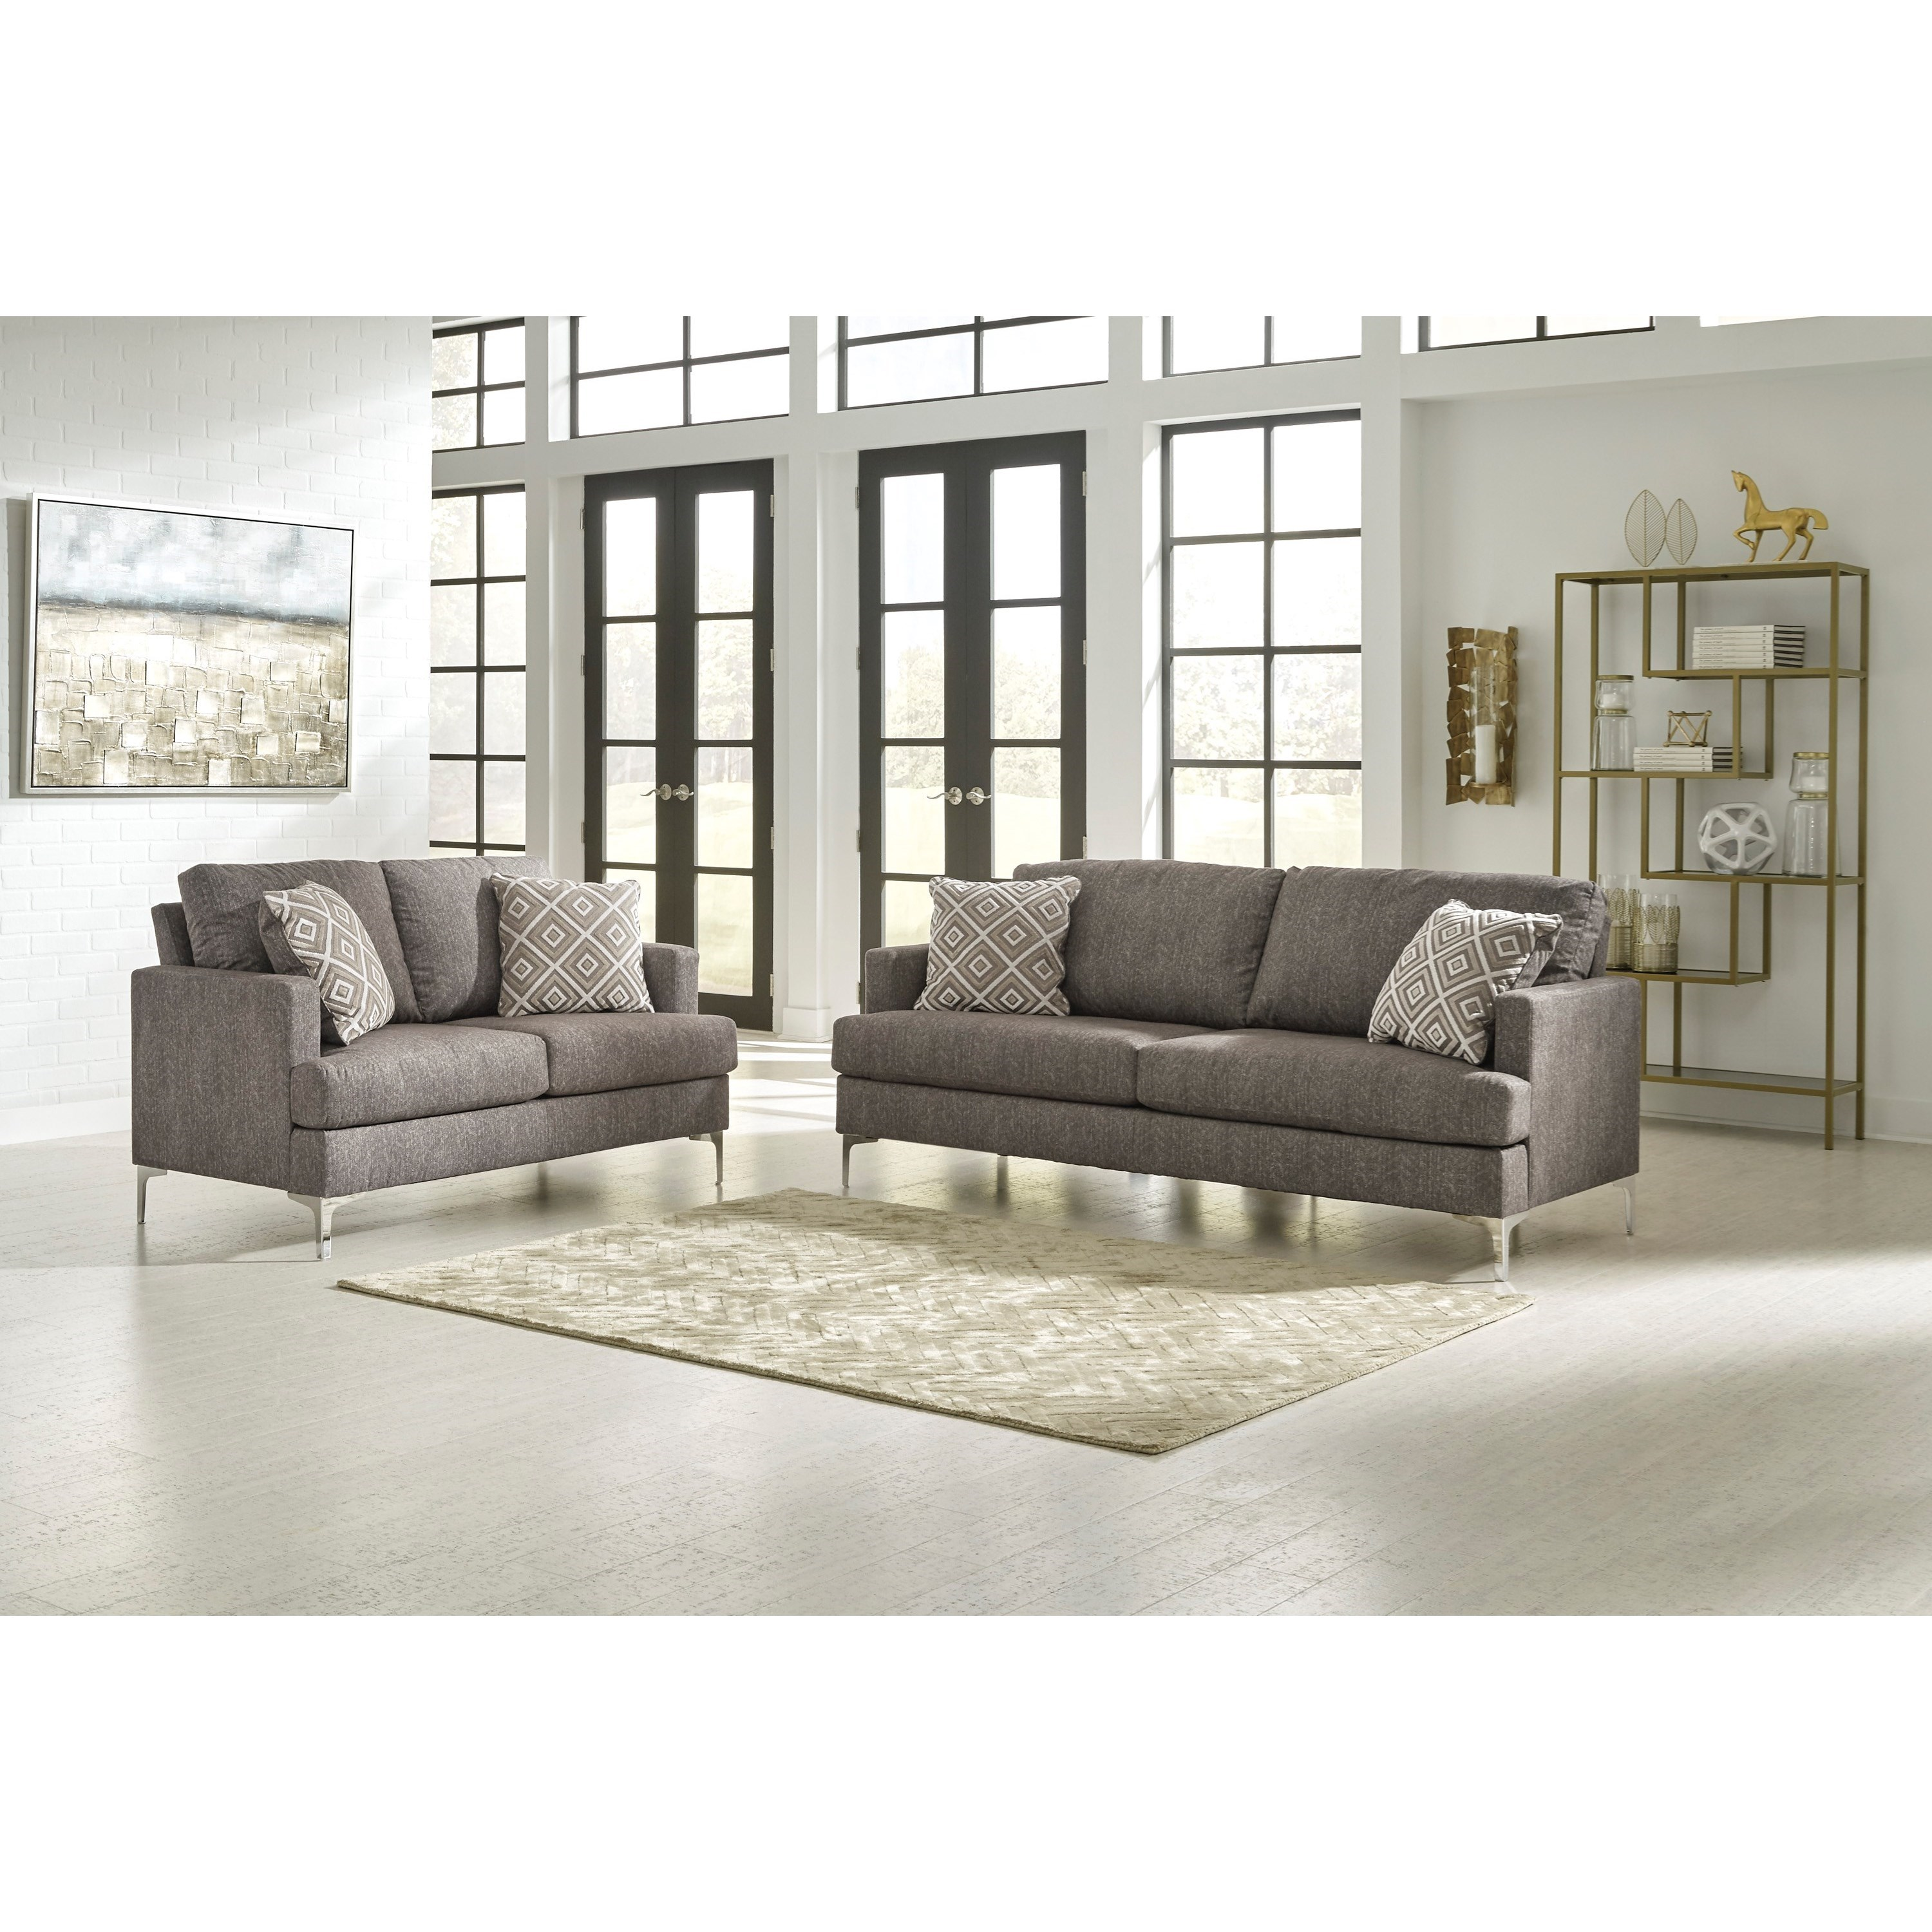 Arcola Stationary Living Room Group by Signature Design by Ashley at Beds N Stuff